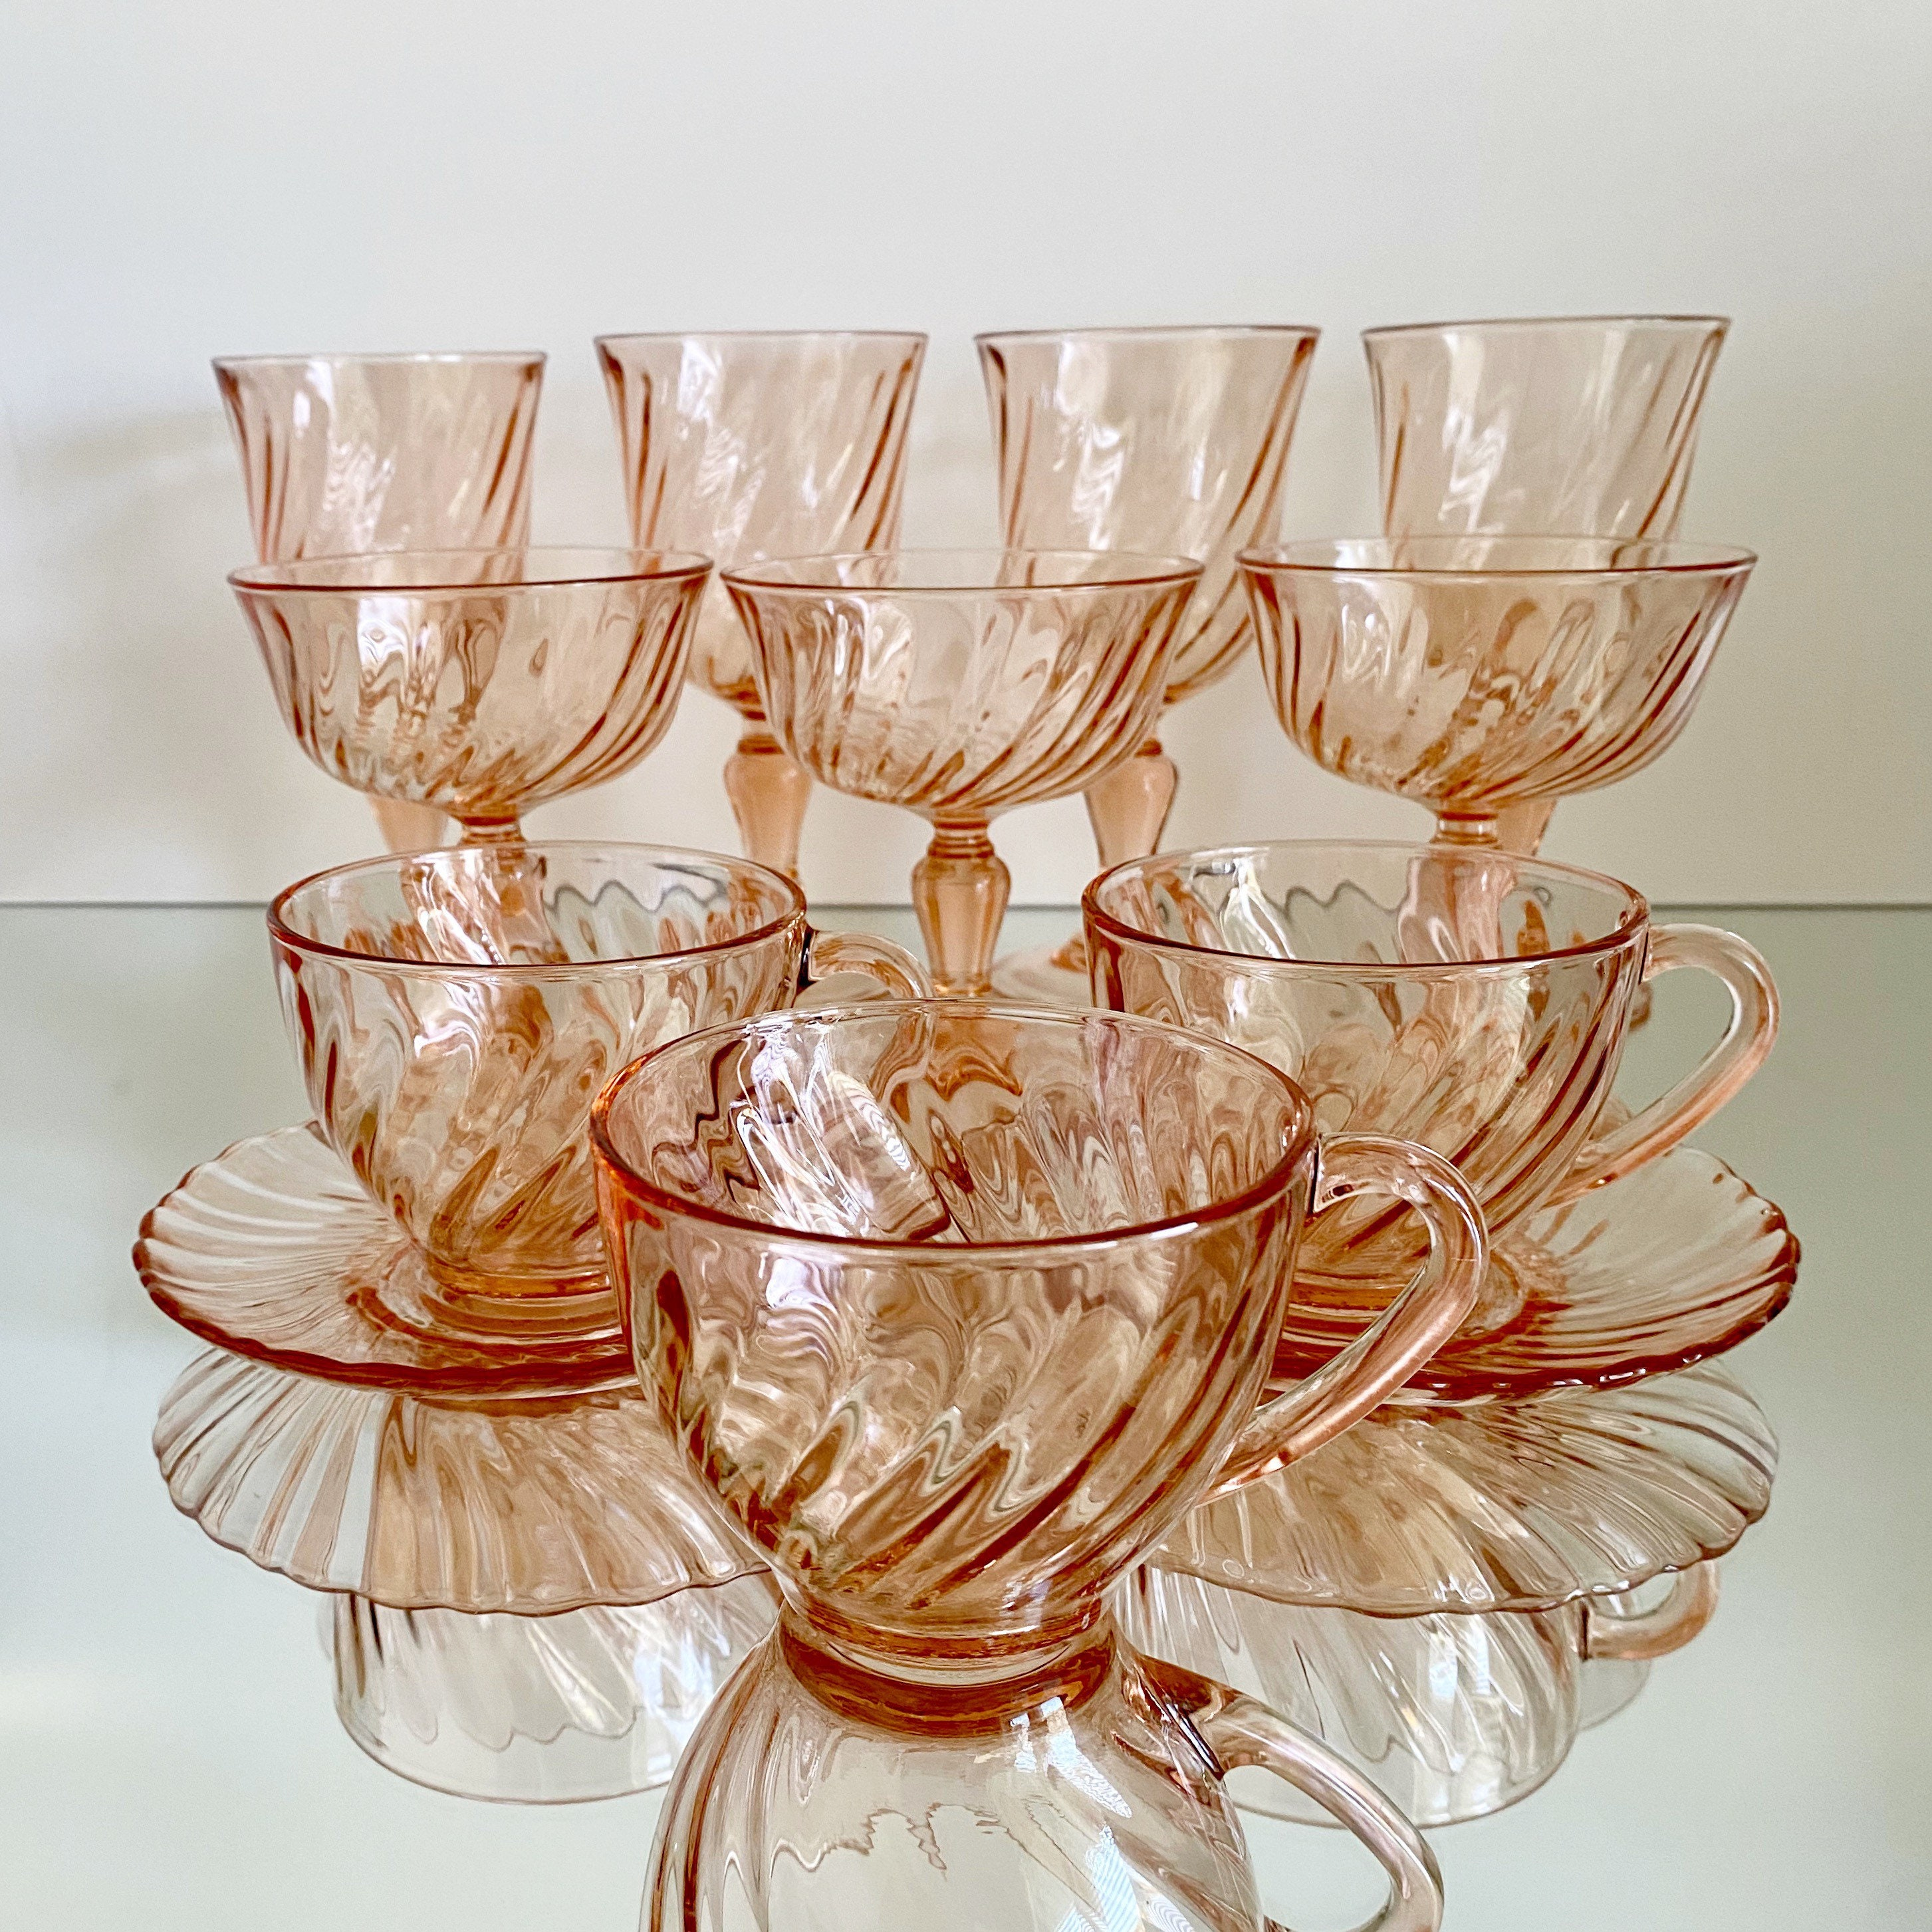 ARCOROC LUMINARC FRANCE NEW PINK SWIRL 5 5/8 INCH WINE GLASS MORE AVAILABLE  | Wine glass, Types of glassware, Teapots and cups